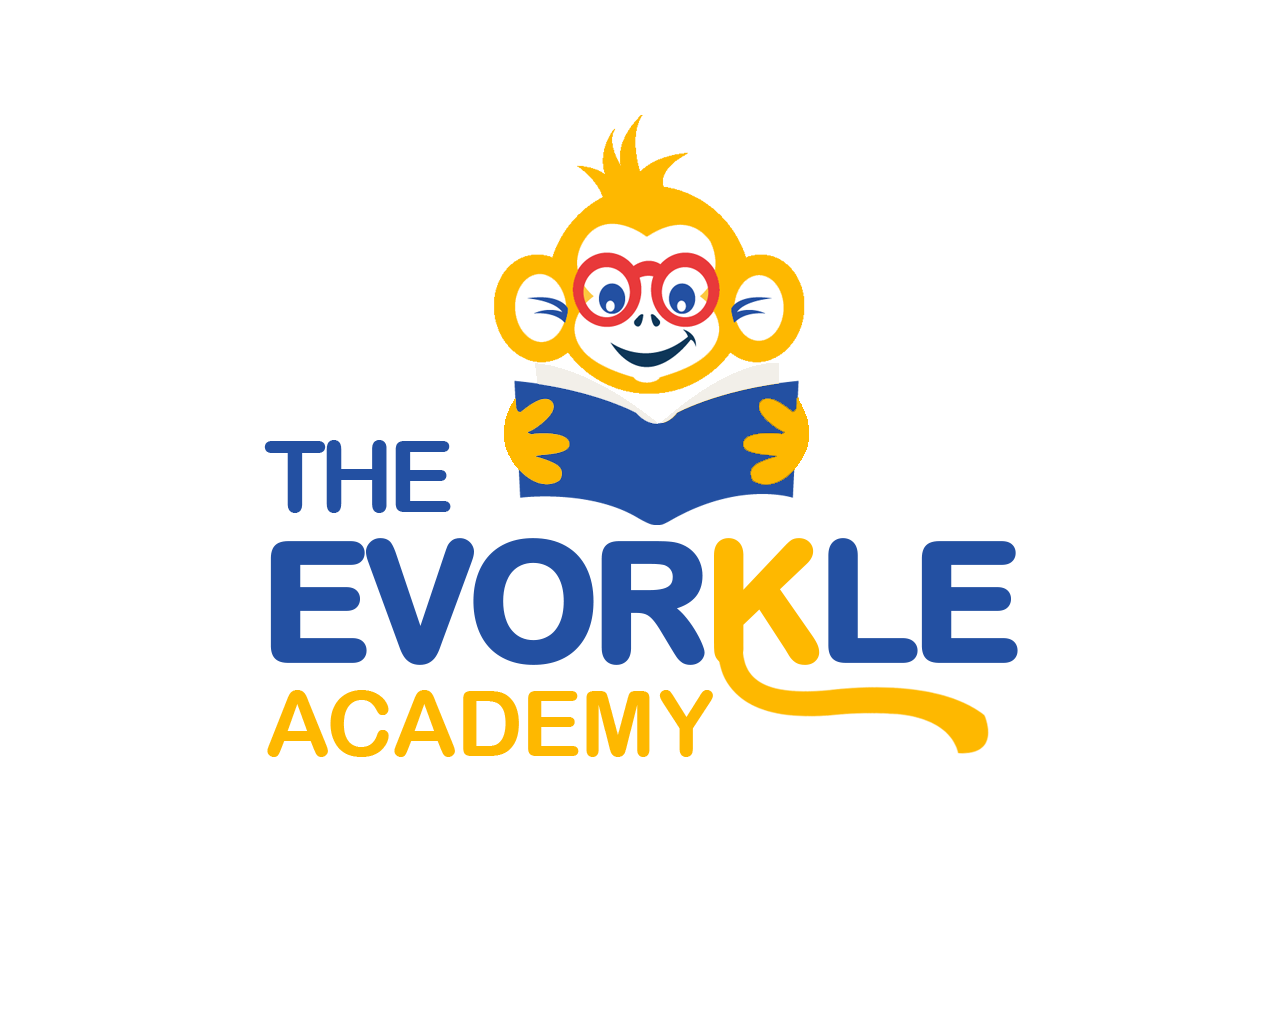 Preschool Learning - The Evorkle Academy